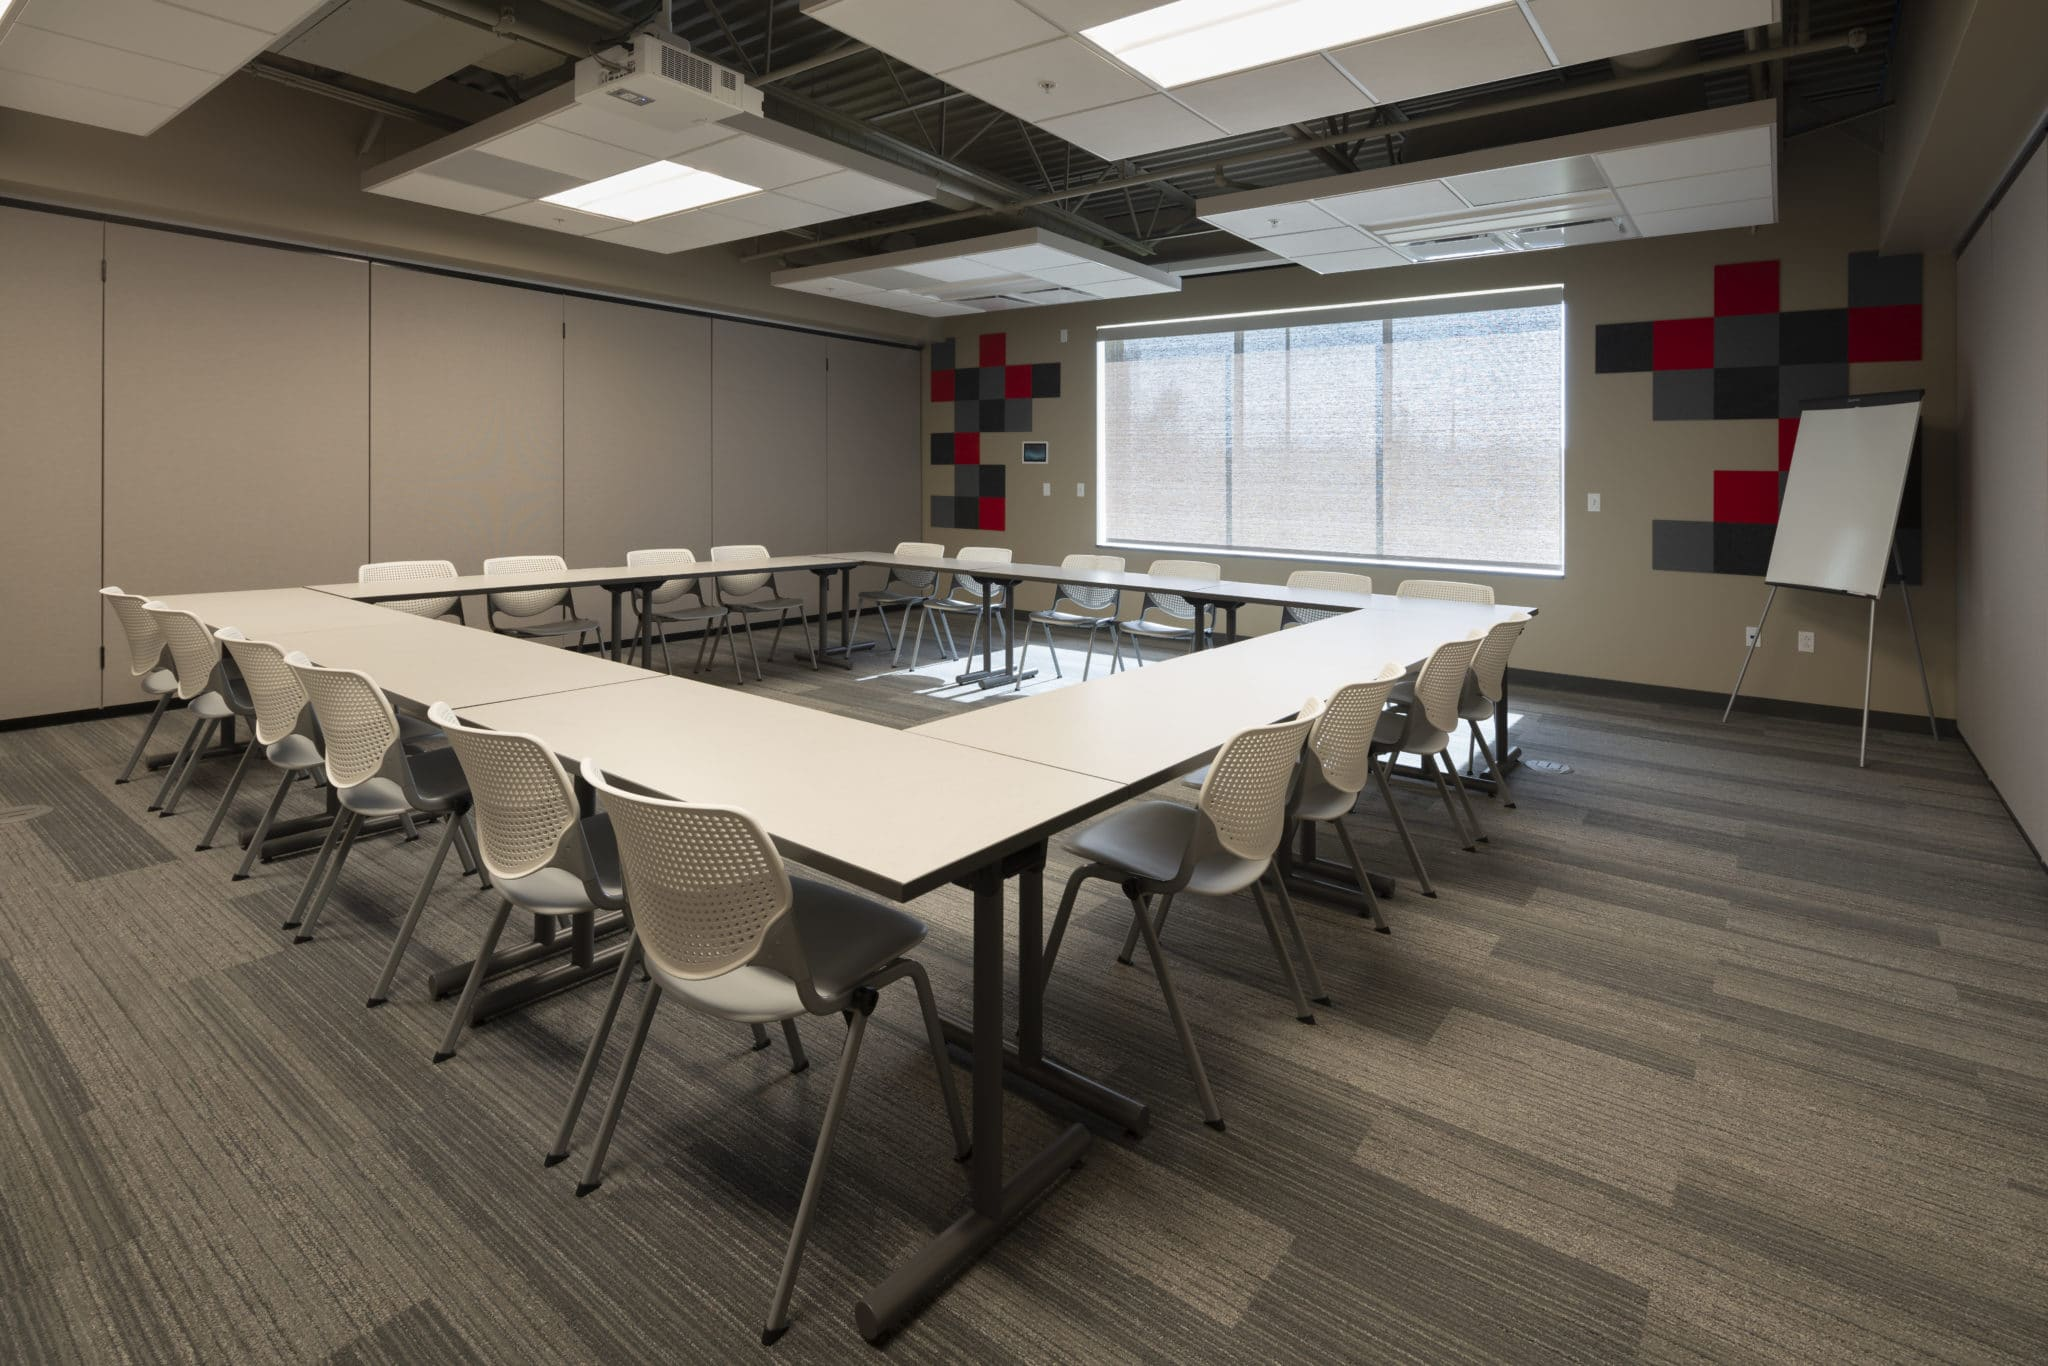 A group of tables pushed together in the form of a square with chairs around them in a conference room at the Training for Life Campus